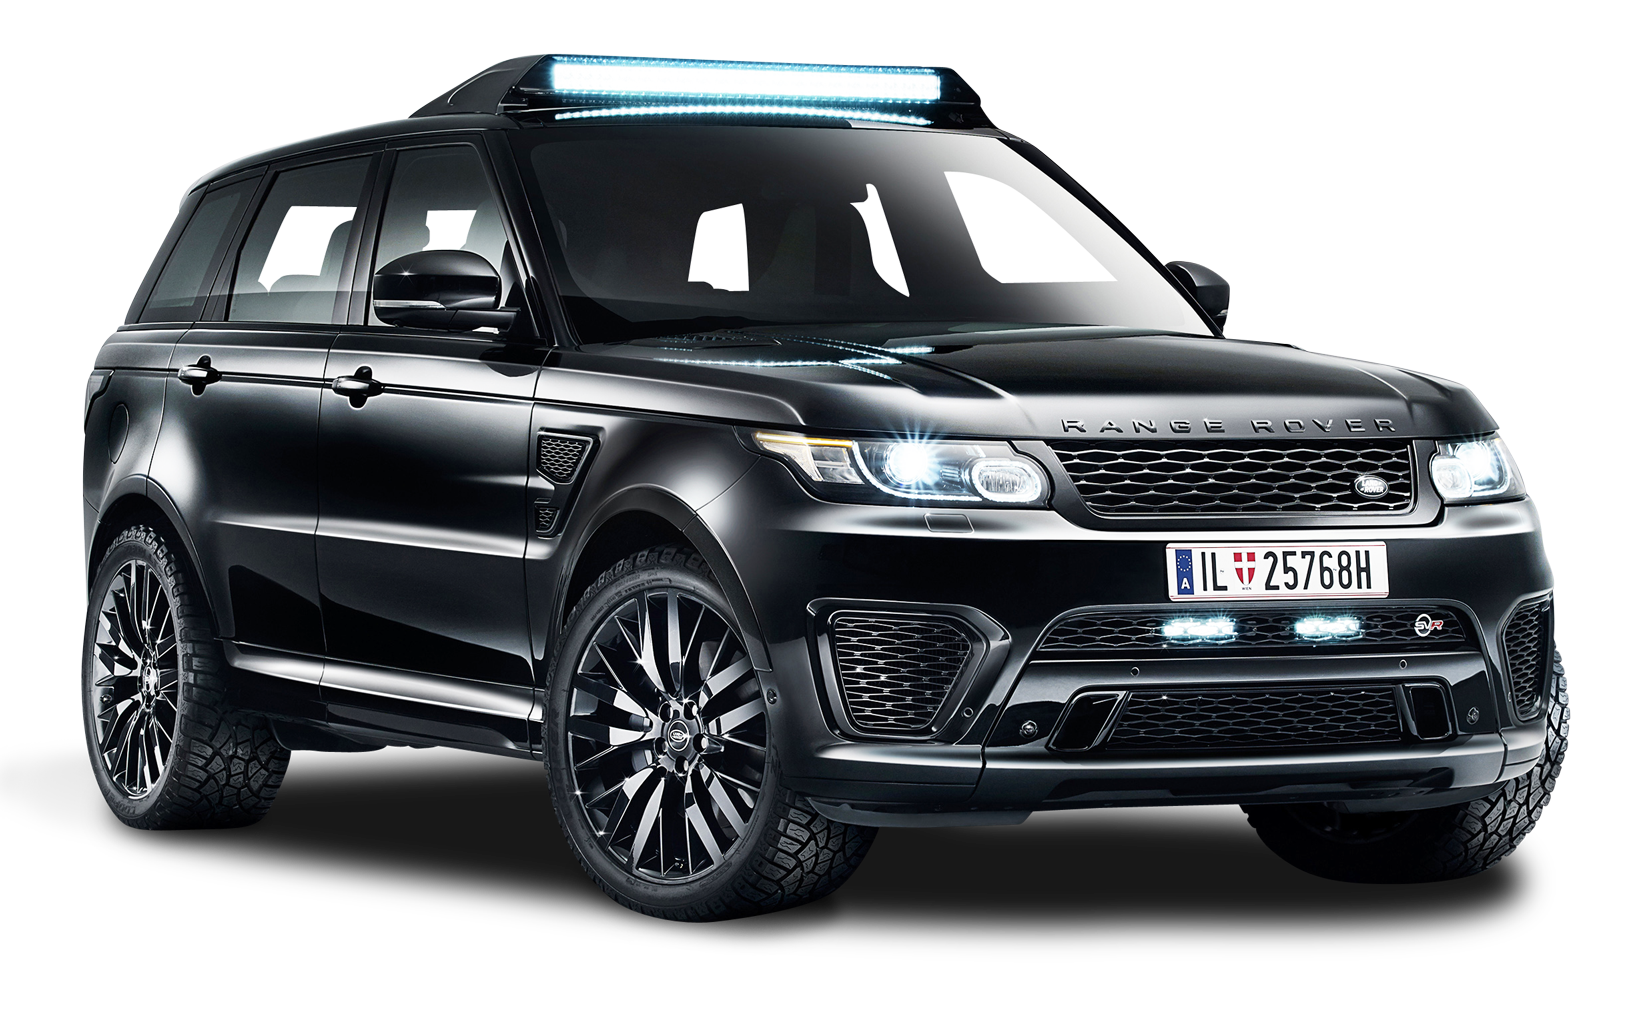 Land Rover Range Rover Sport Photo PNG Image